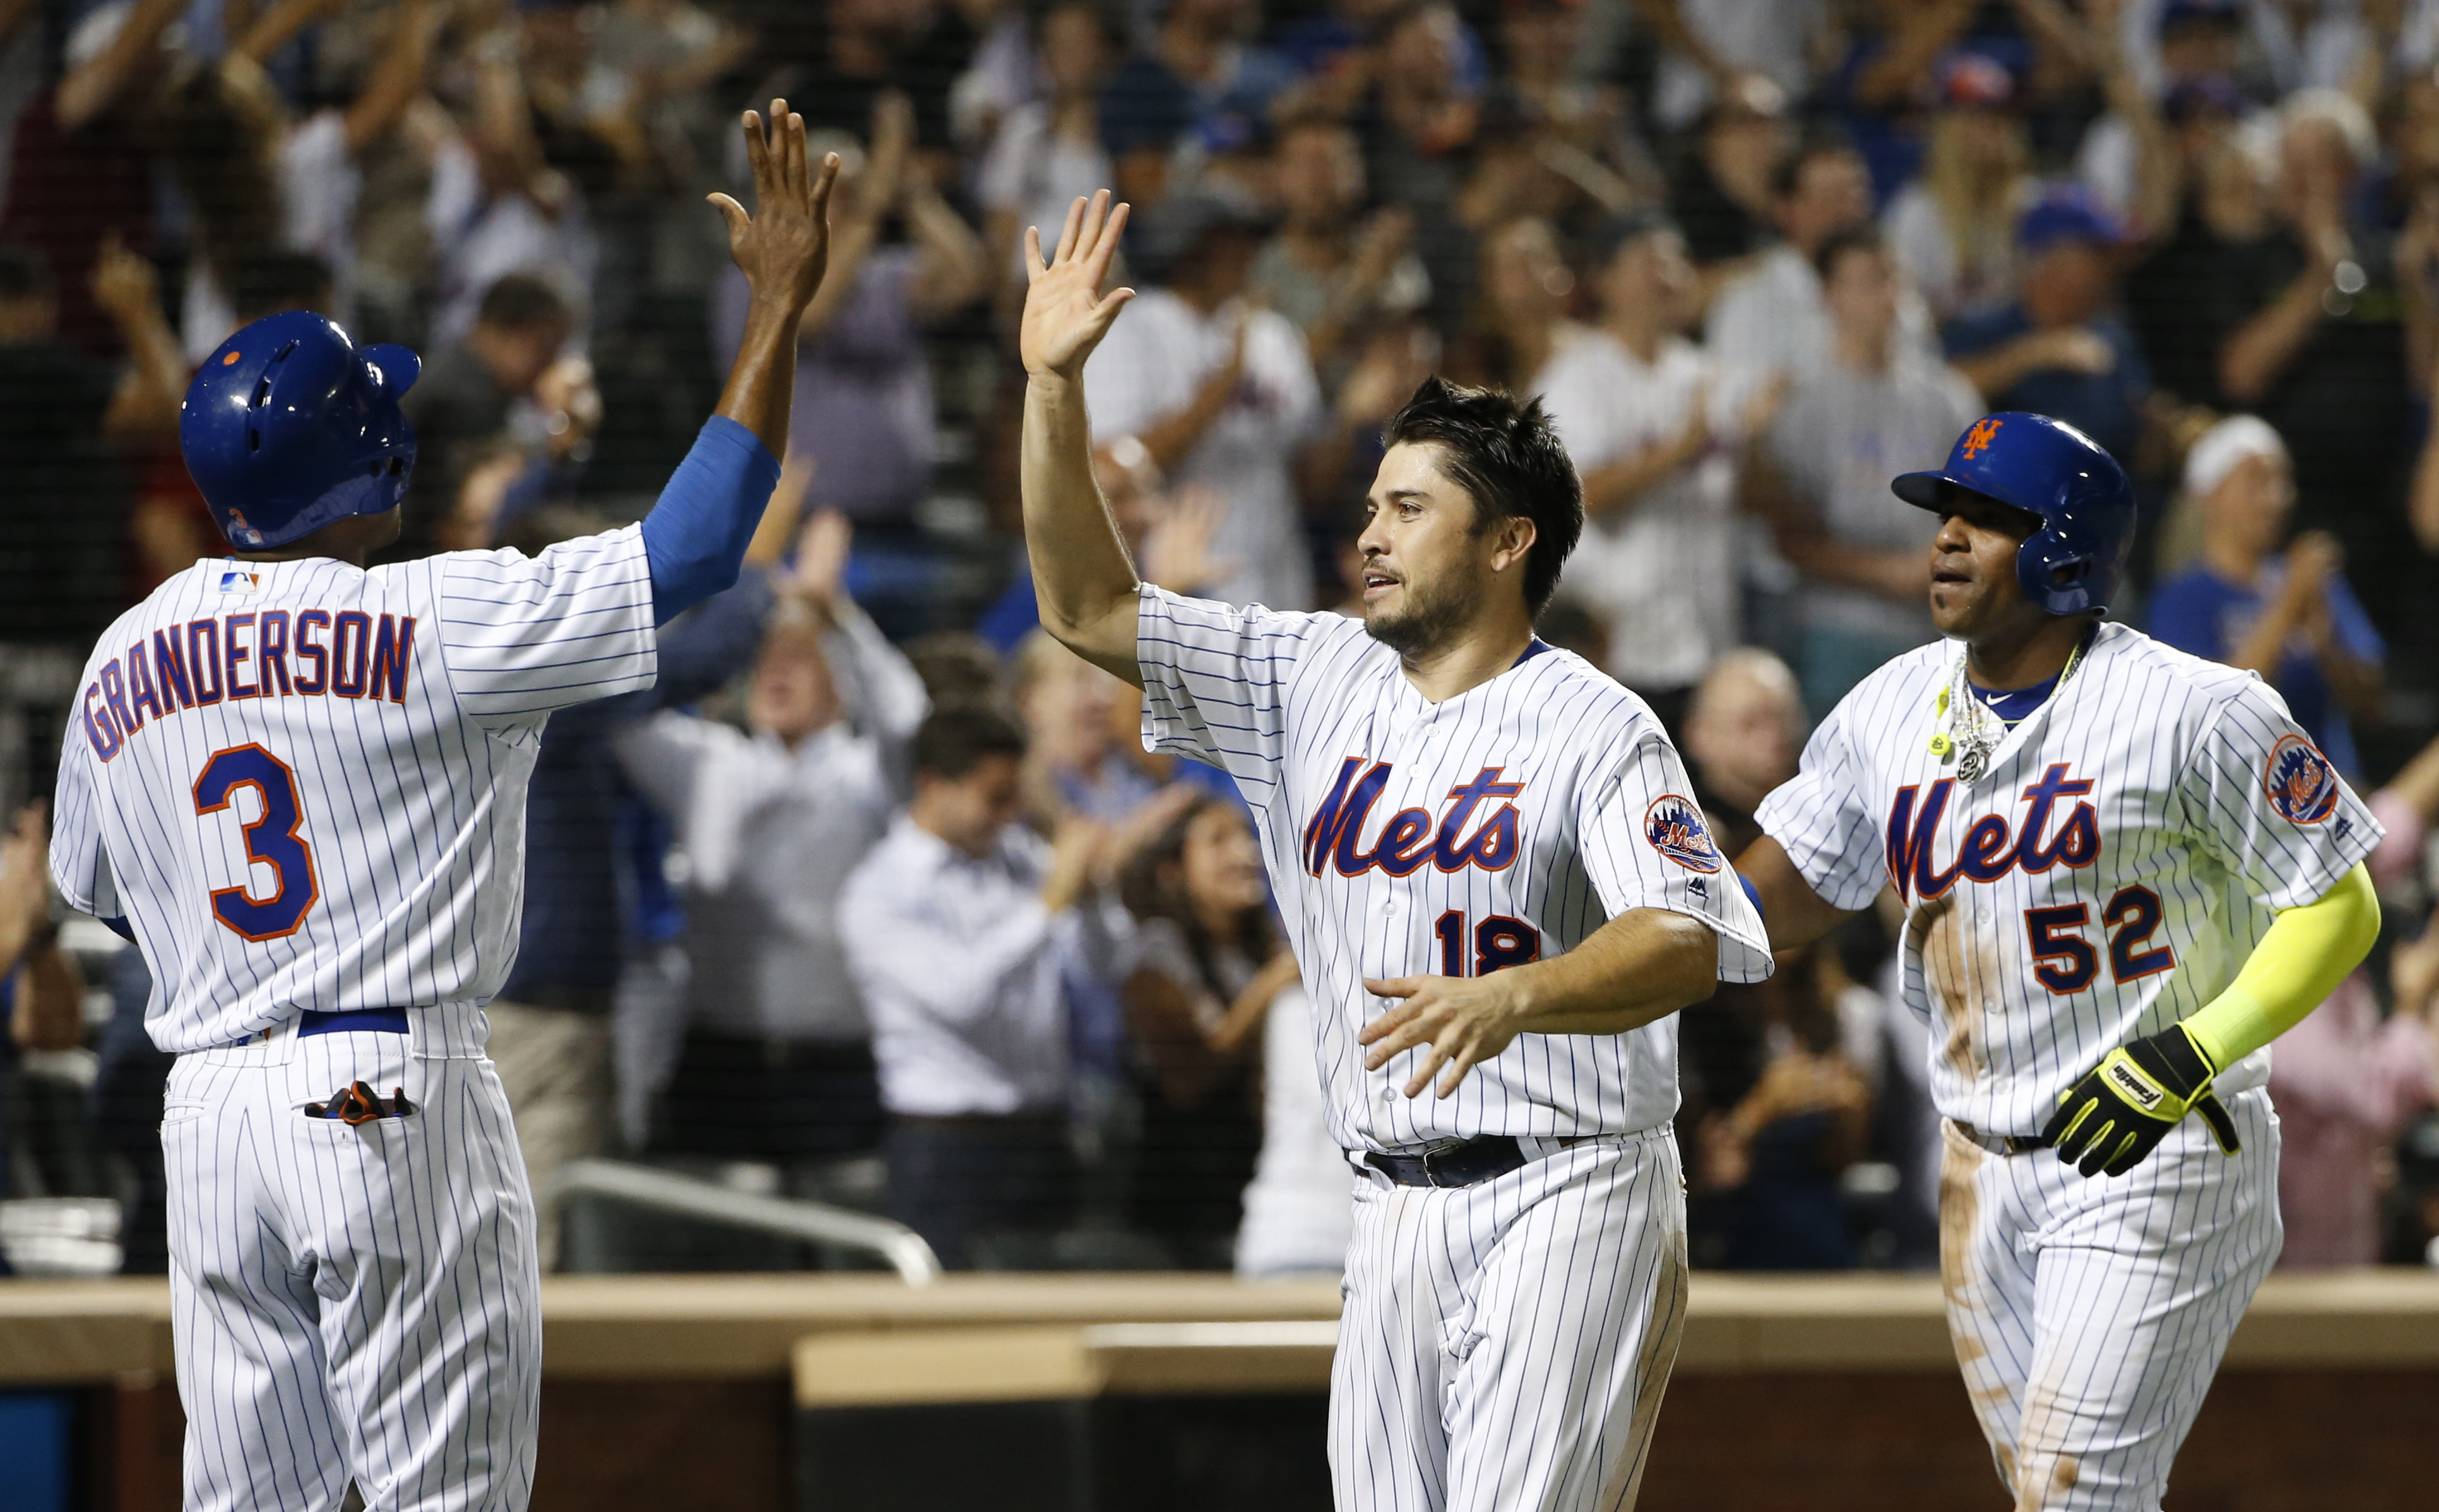 New York Mets' Curtis Granderson (3) greets Travis d'Arnaud (18) and Yoenis Cespedes (52) after all three scored on Kelly Johnson's eighth-inning double in a baseball game against the Miami Marlins, Wednesday, Aug. 31, 2016, in New York. (AP Photo/Kathy W